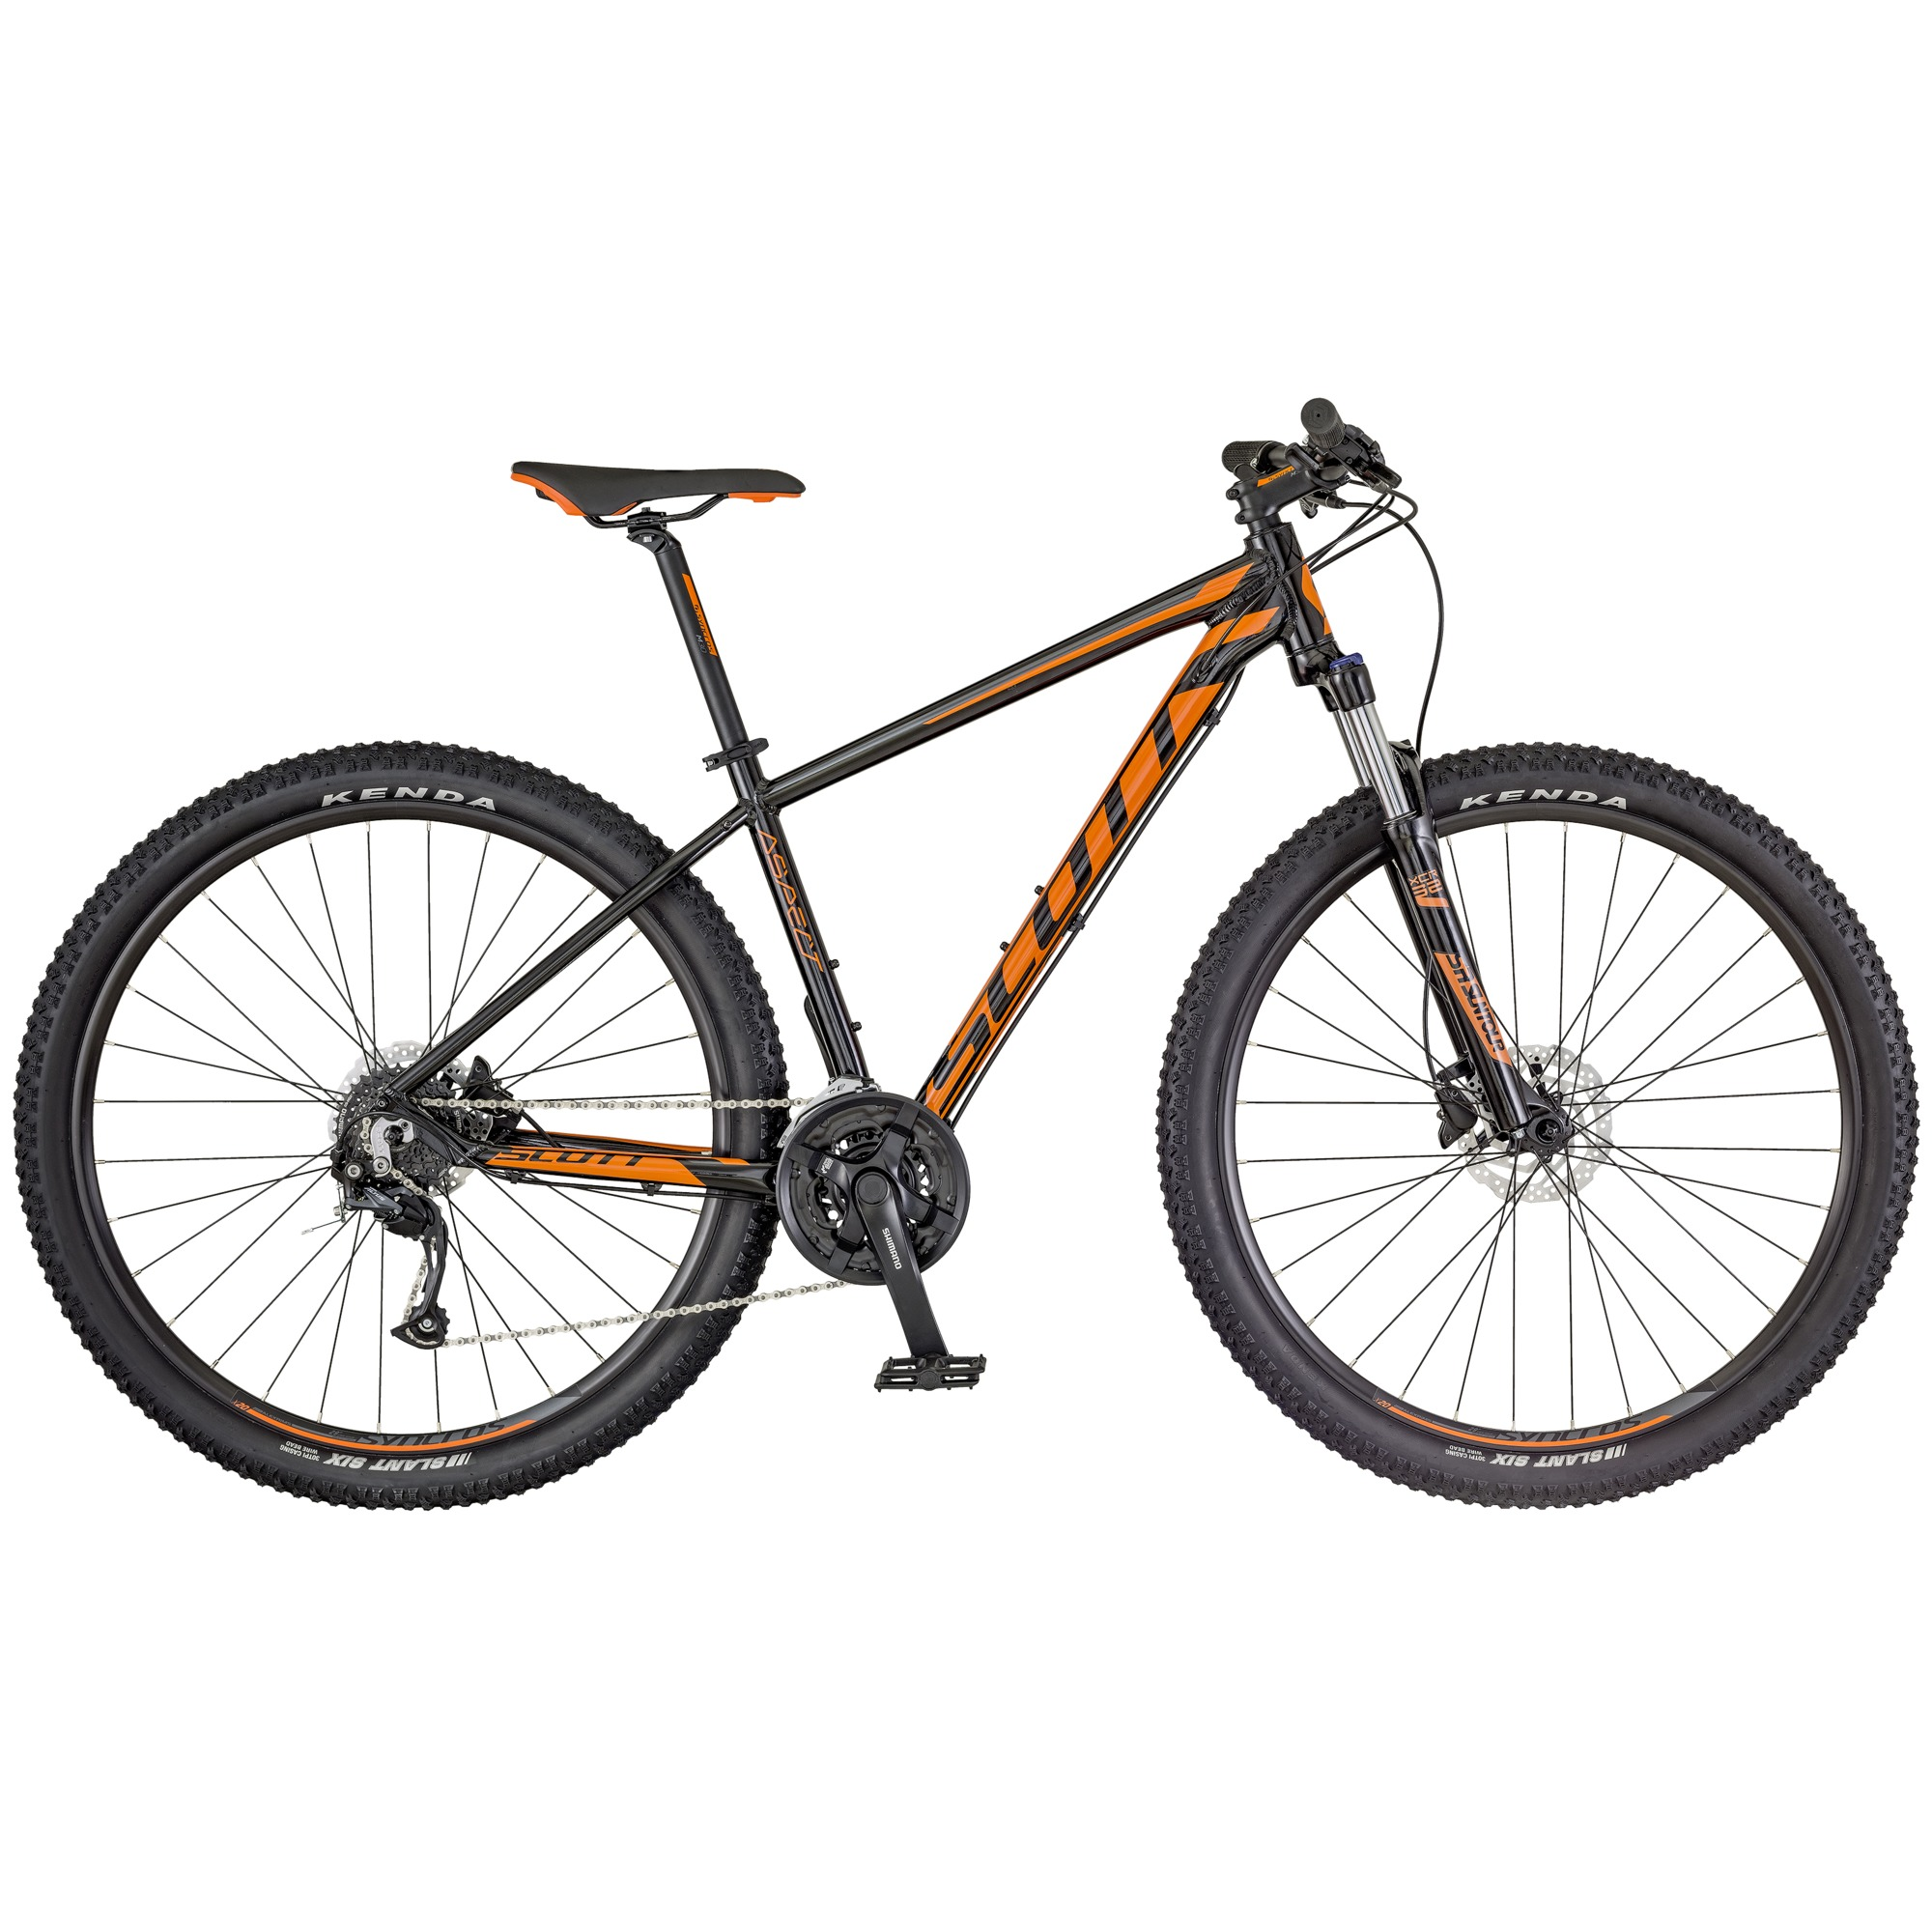 SCOTT Aspect 950 Bike schwarz/orange XXL - SCOTT Aspect 950 Bike schwarz/orange XXL